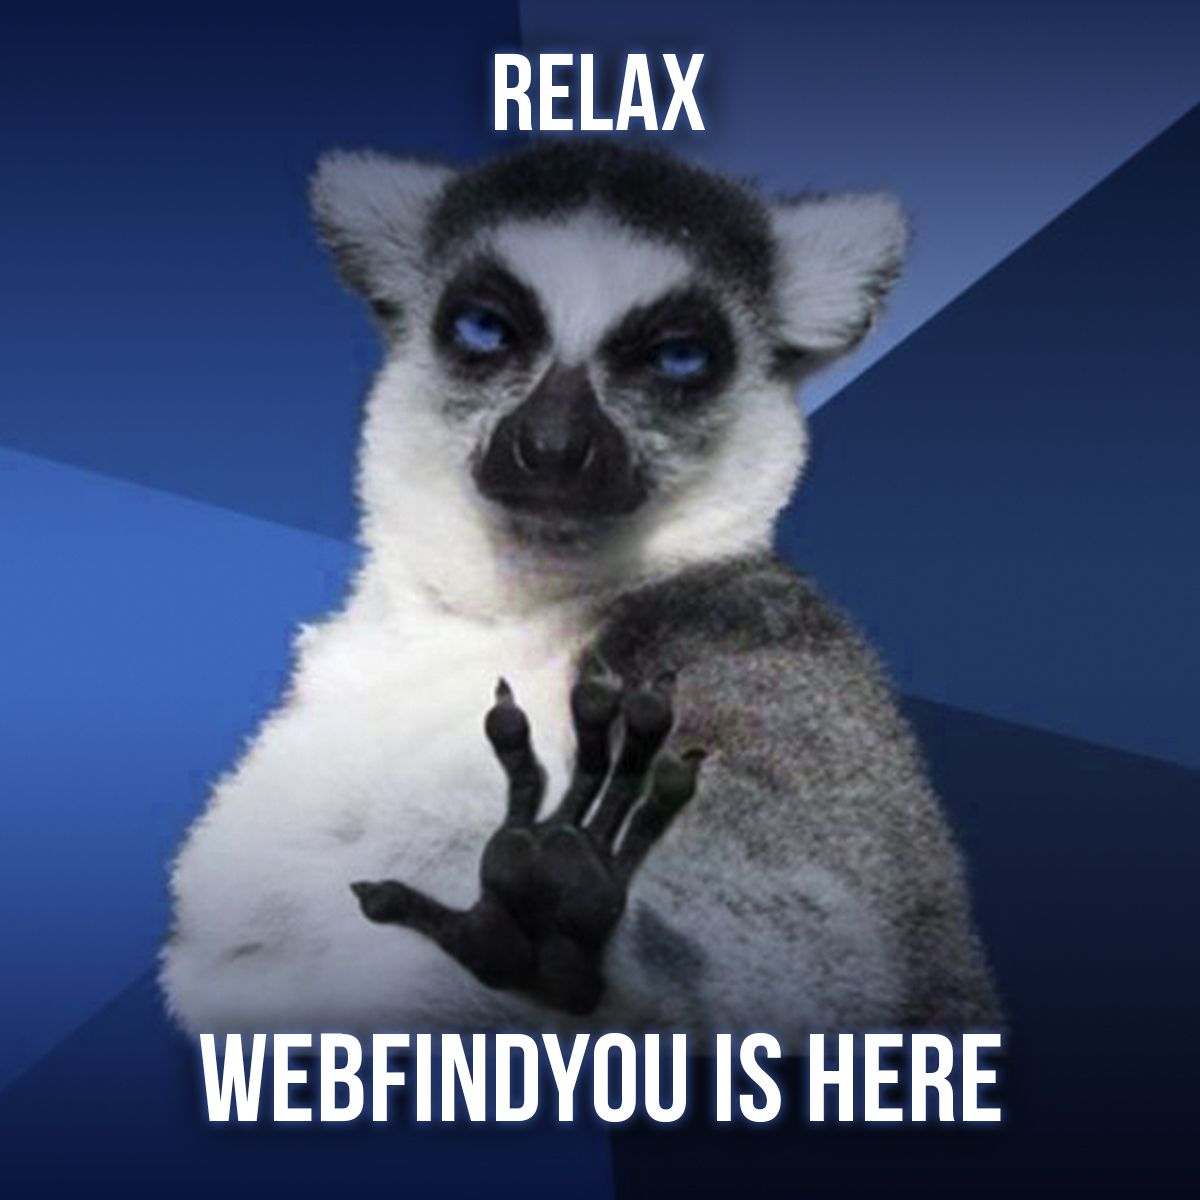 Relax WebFindYou is Here